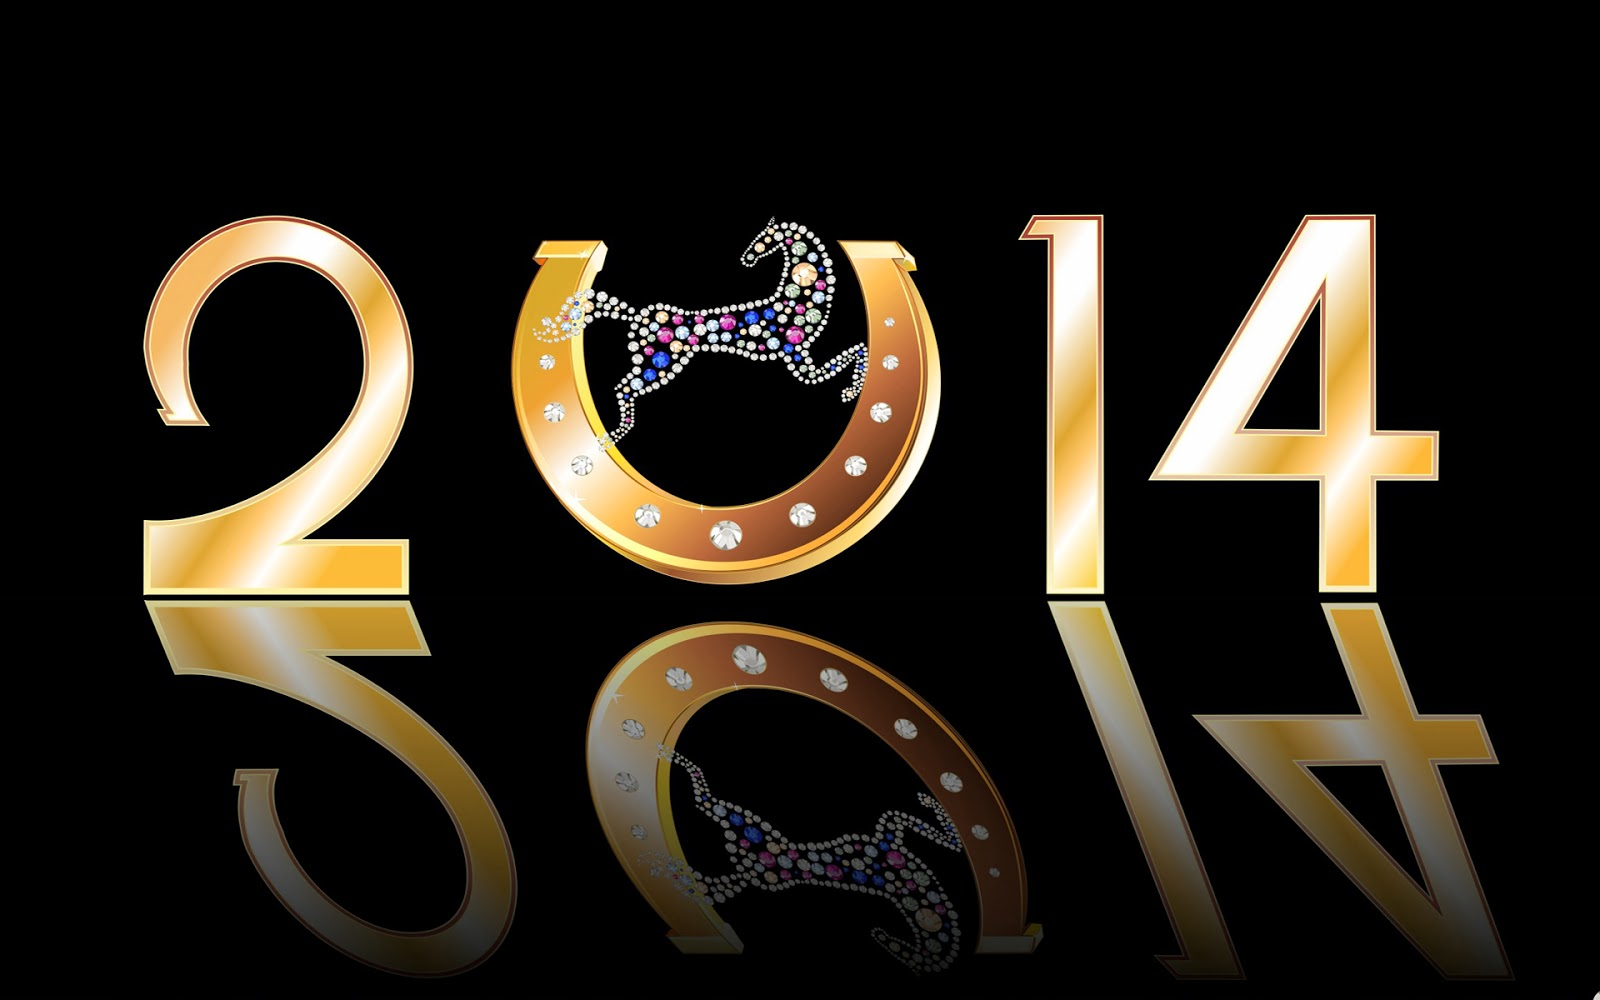 Happy new year 2014 wallpapers funky happy new year 2014 wallpapers download voltagebd Image collections